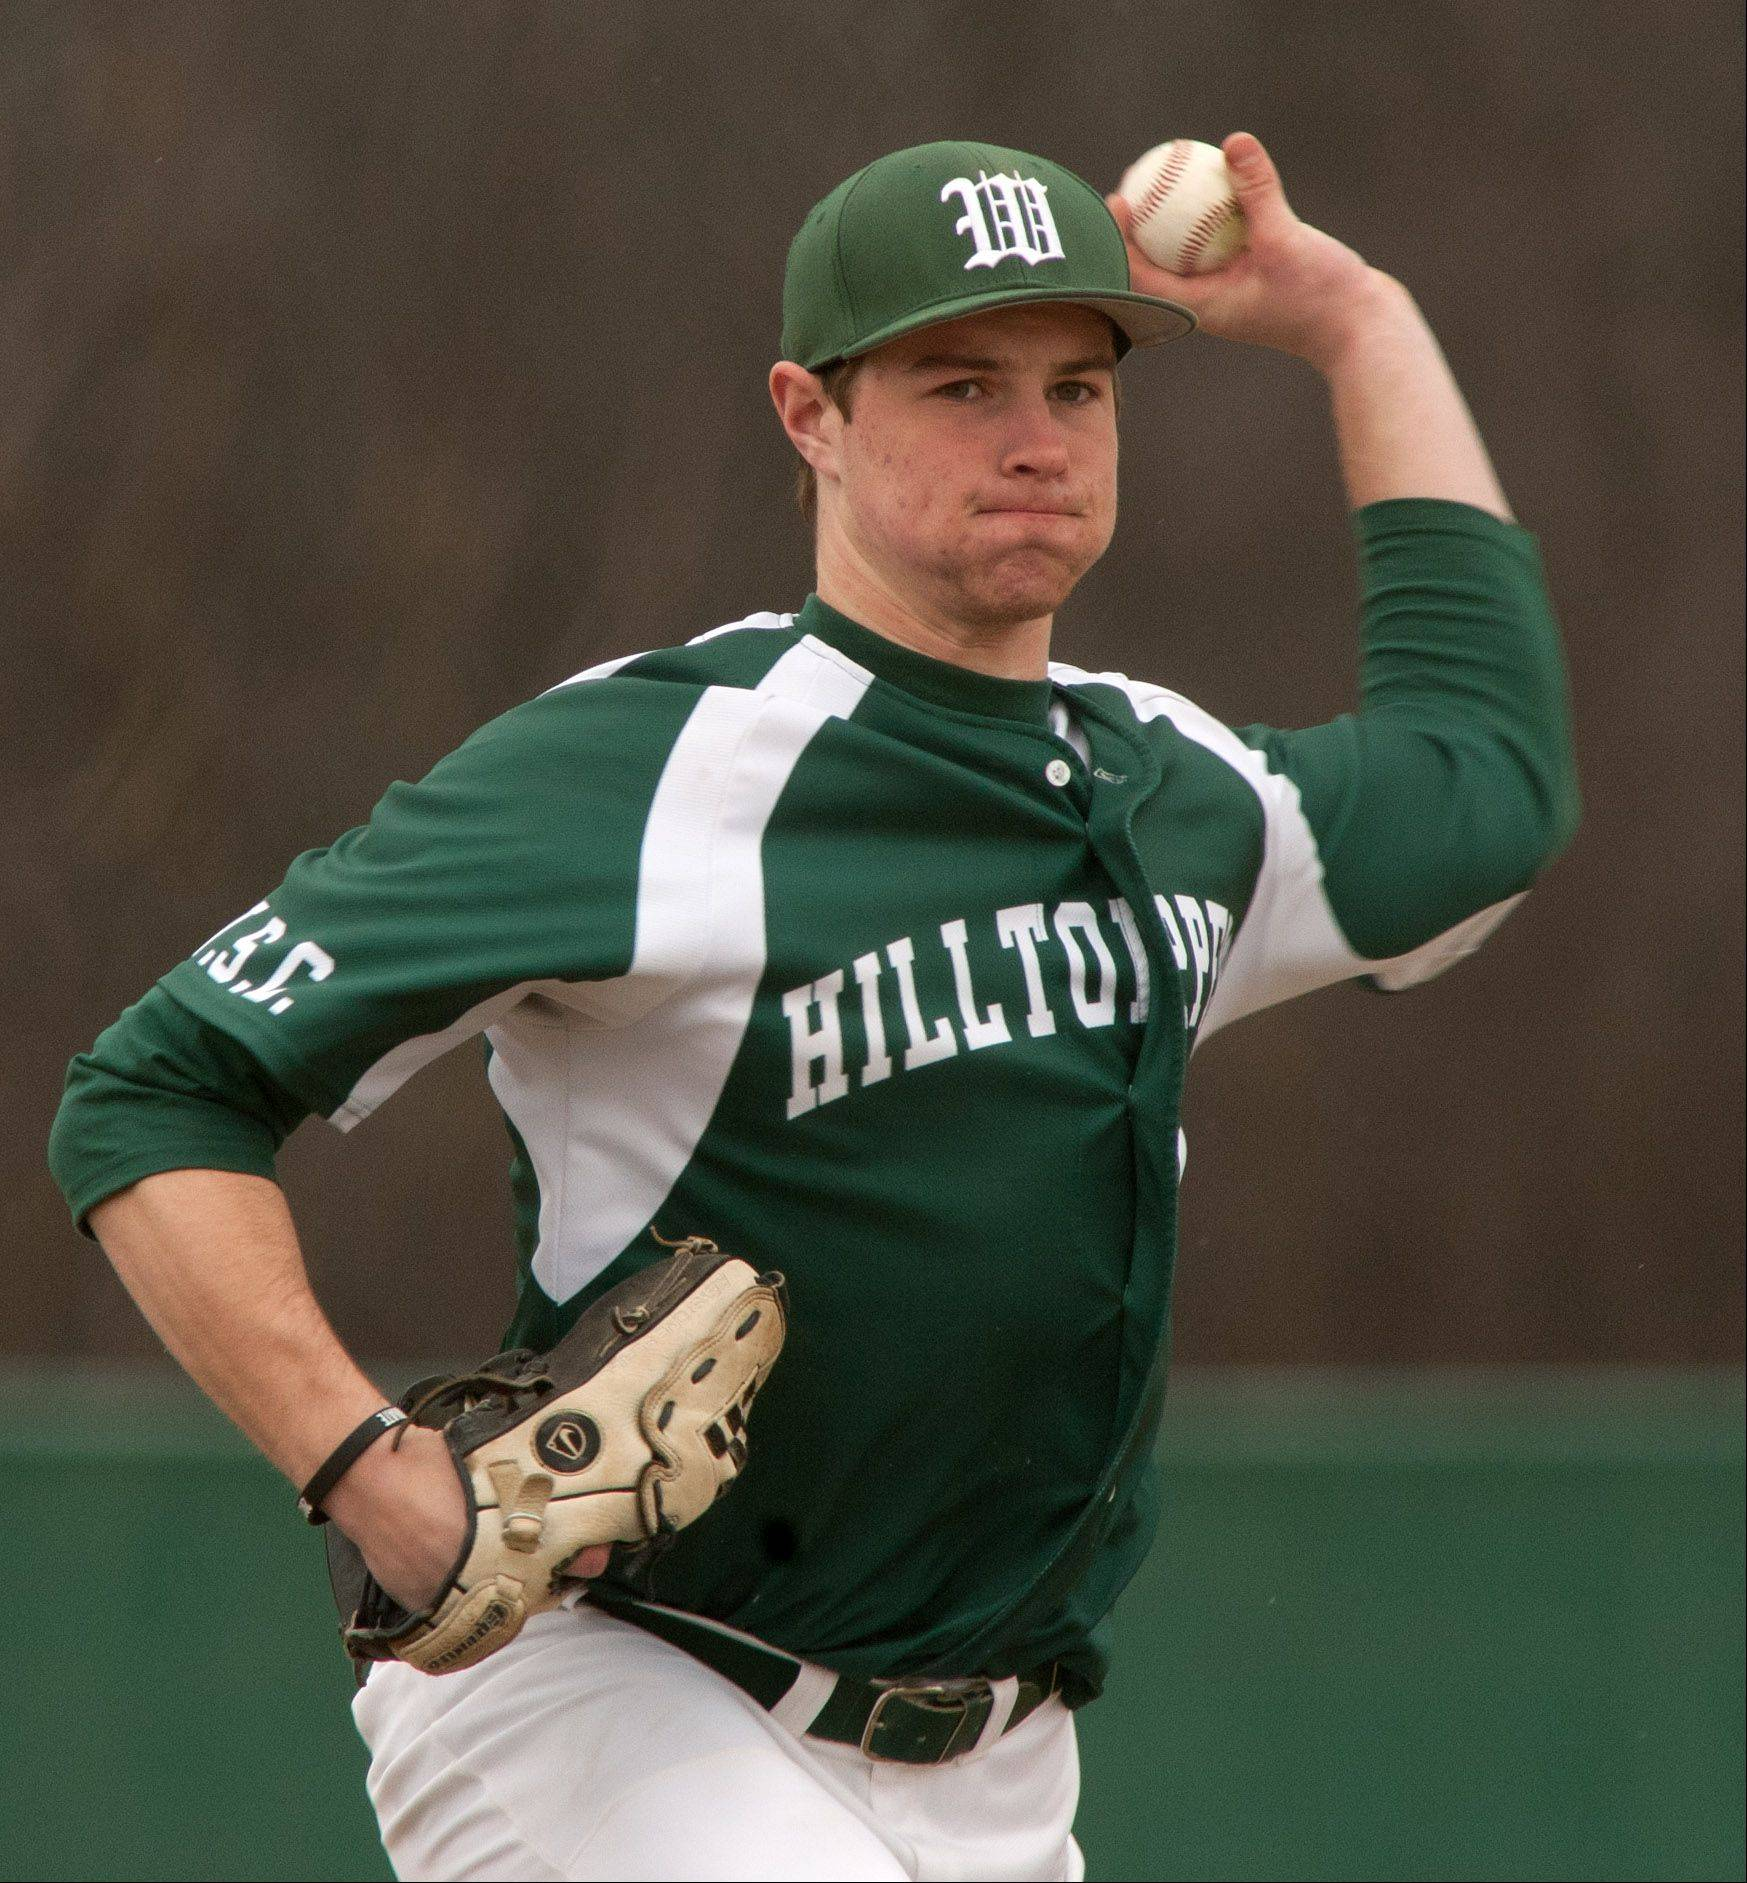 Grant Greeno delivers a pitch during Glenbard West's 6-5 win over Hinsdale Central.